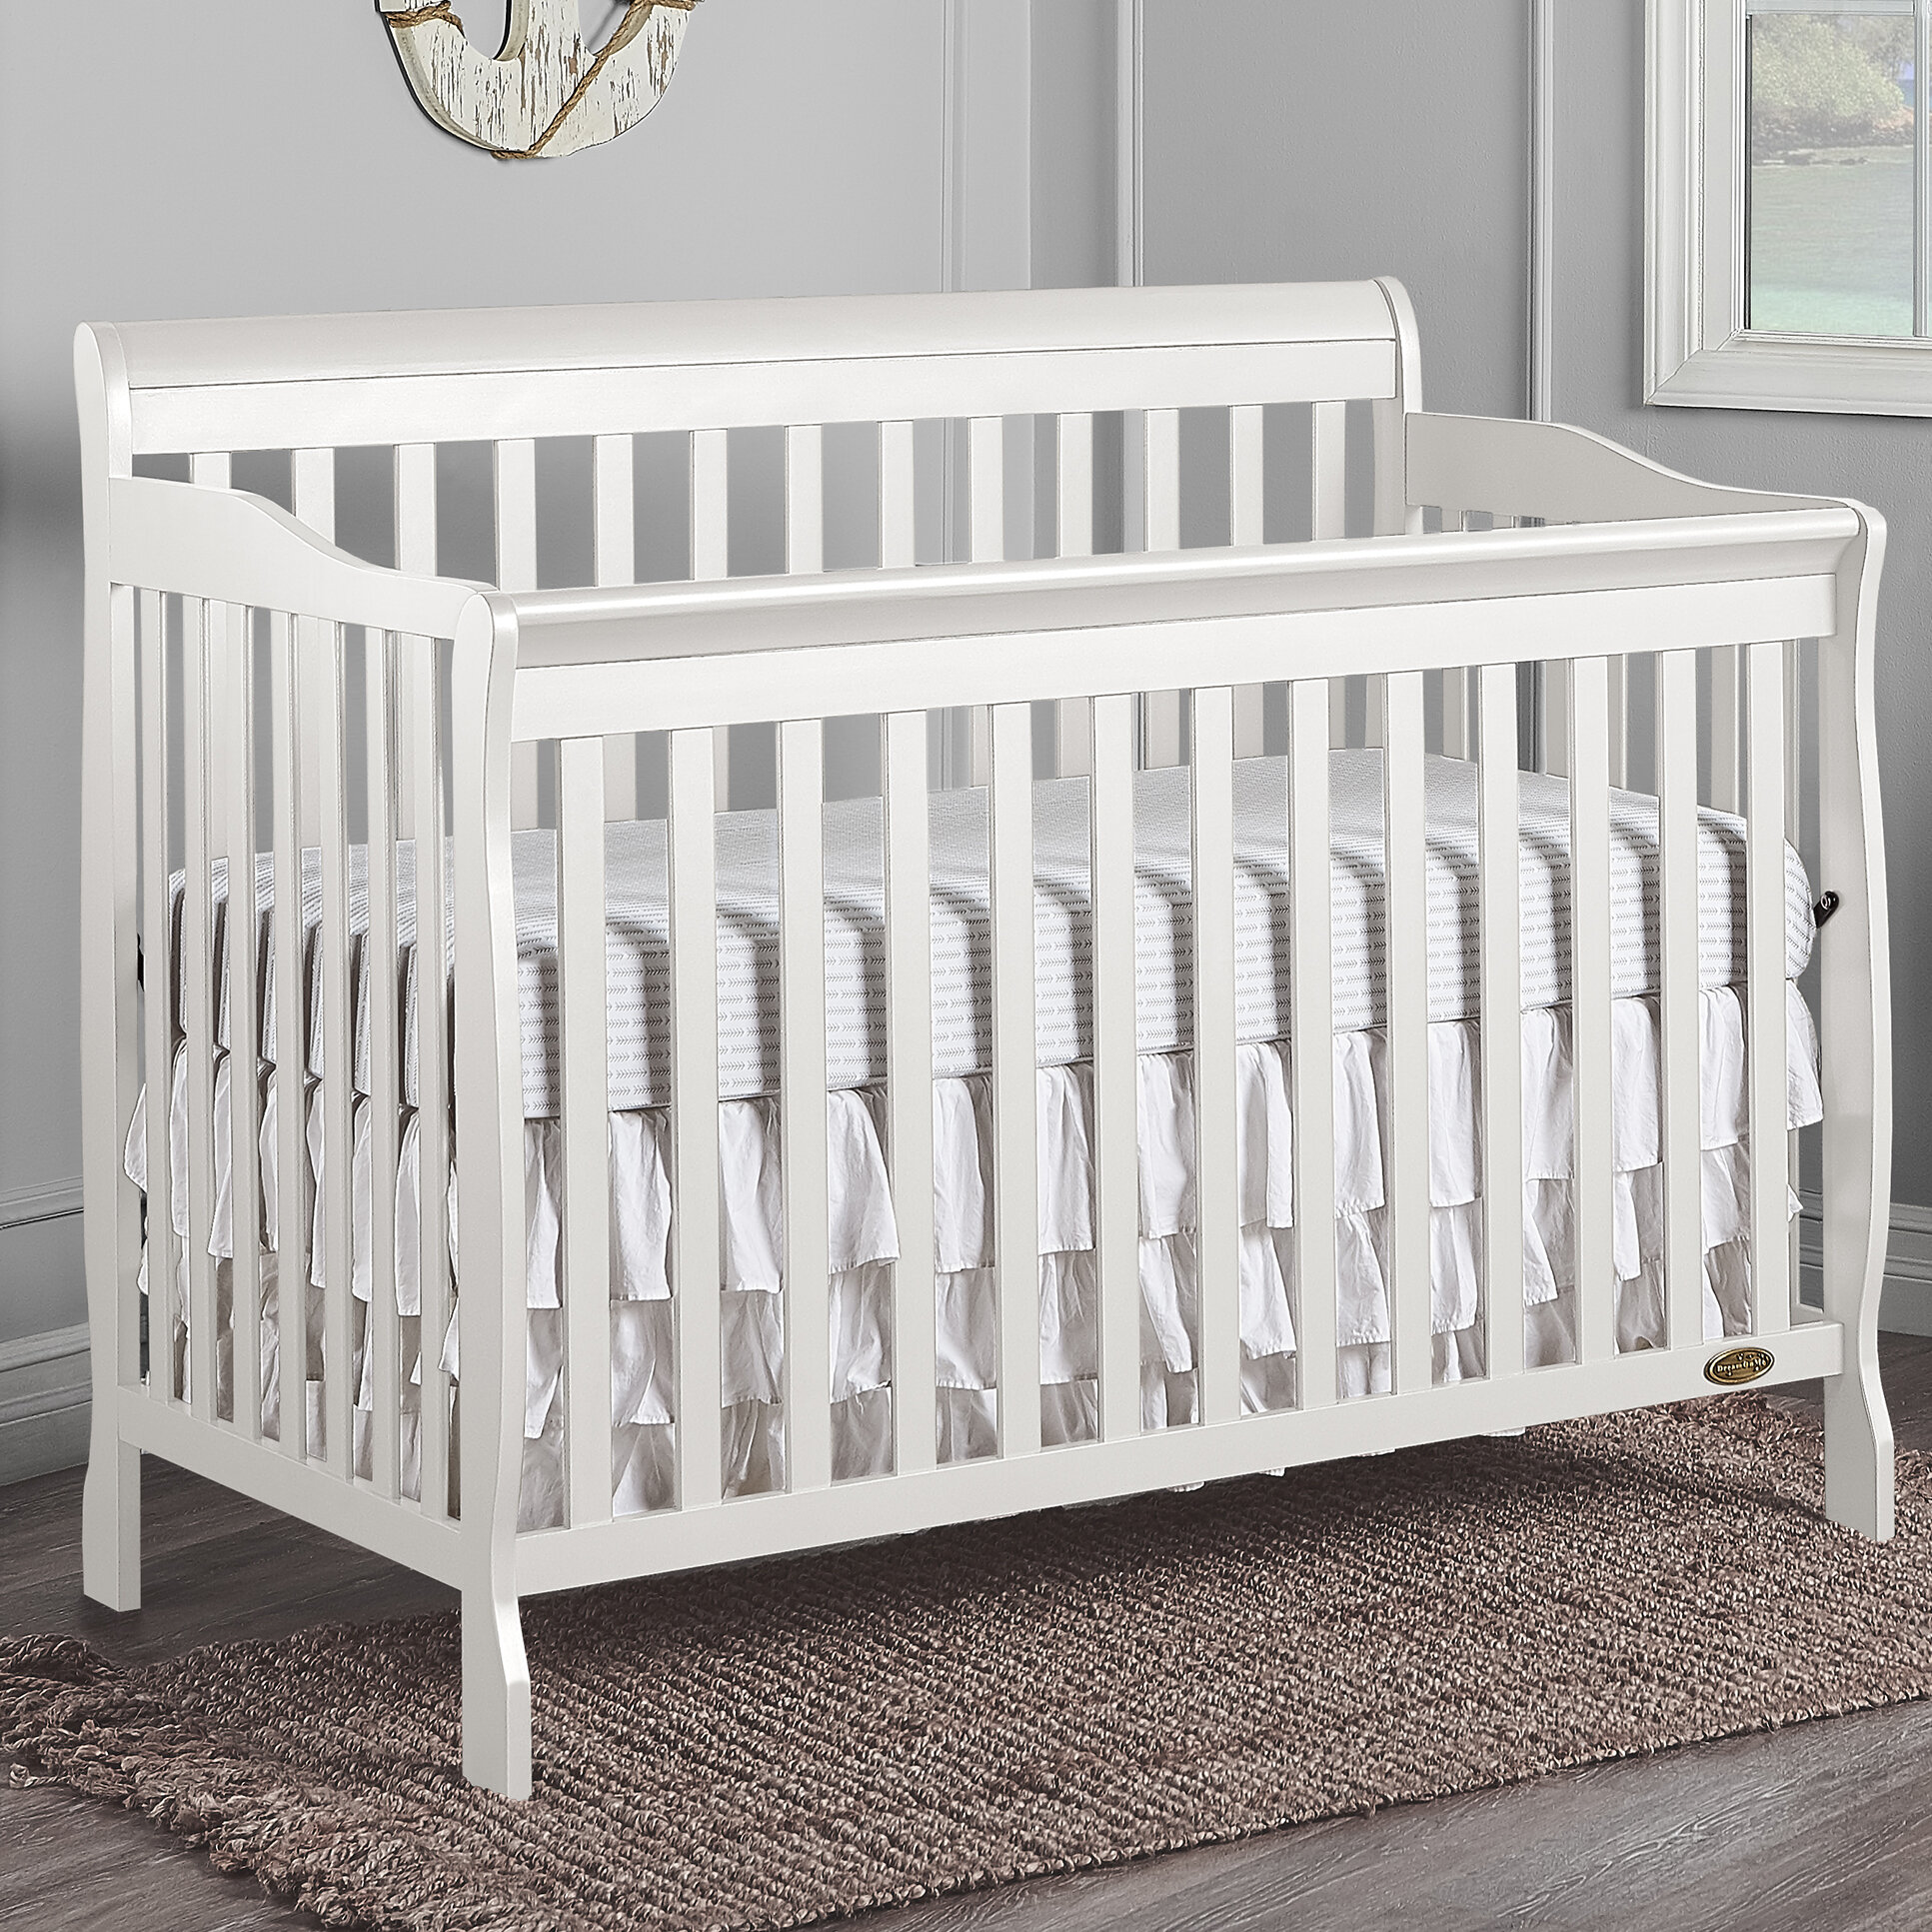 baby a full changing plus dream is little cribs with part convertible drawer tables impressive me dresser ideas and crib on multipurpose size fosterboyspizza bed todays diaper beautiful rugged constructed toddler most of